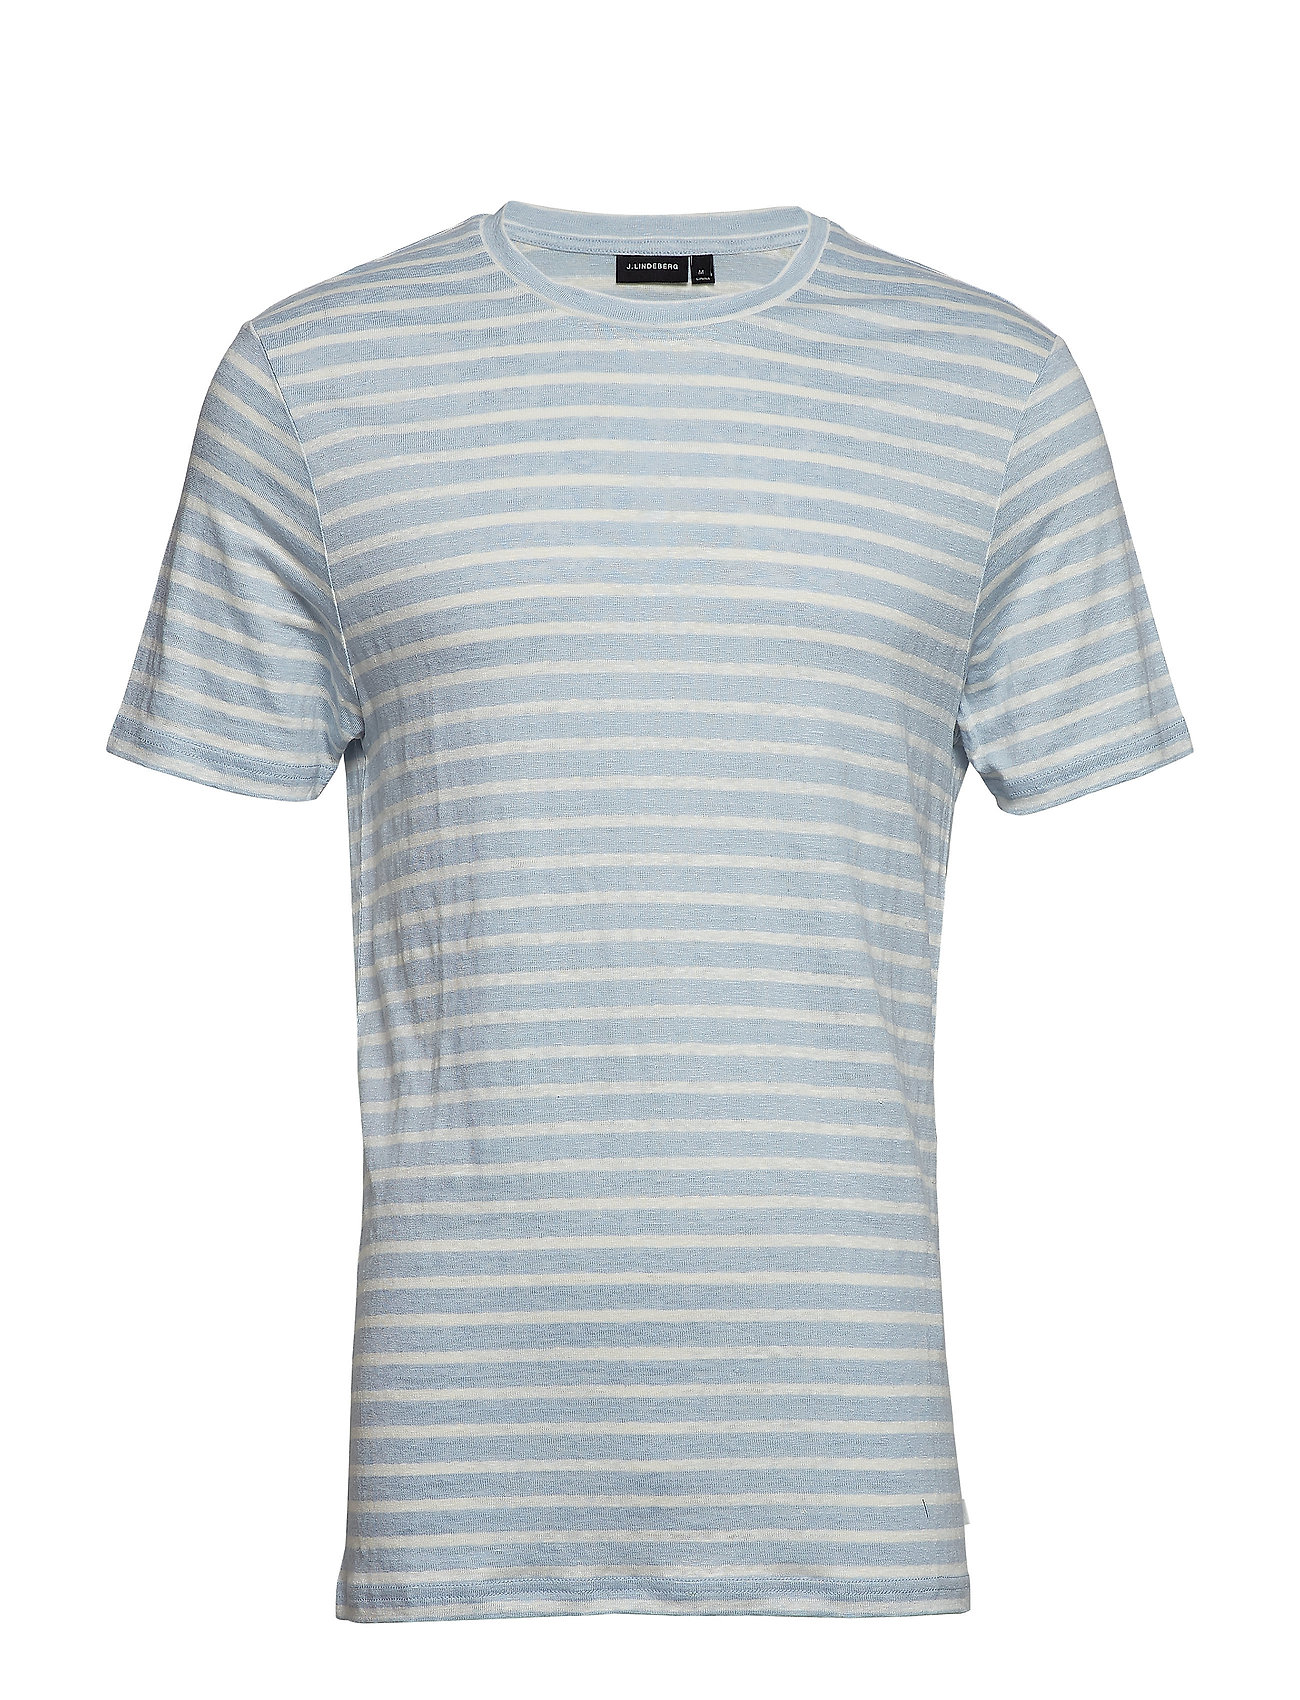 J. Lindeberg Coma Clean Striped Linen - ICE FLOW